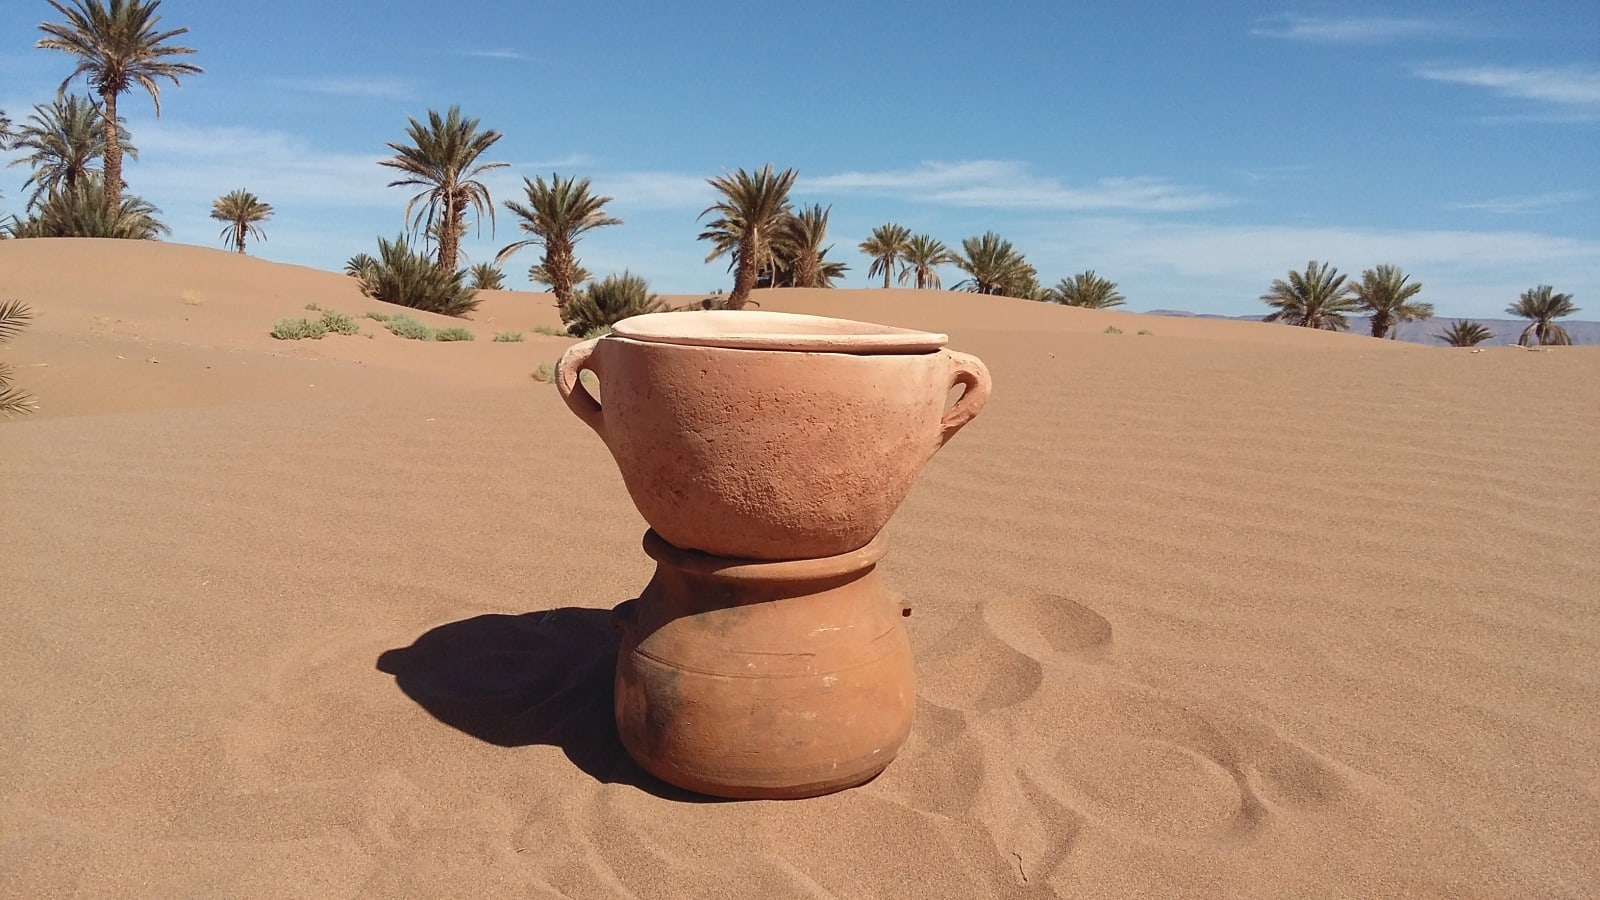 Water Pot Soil and Wood and Shrubs Brown Morocco